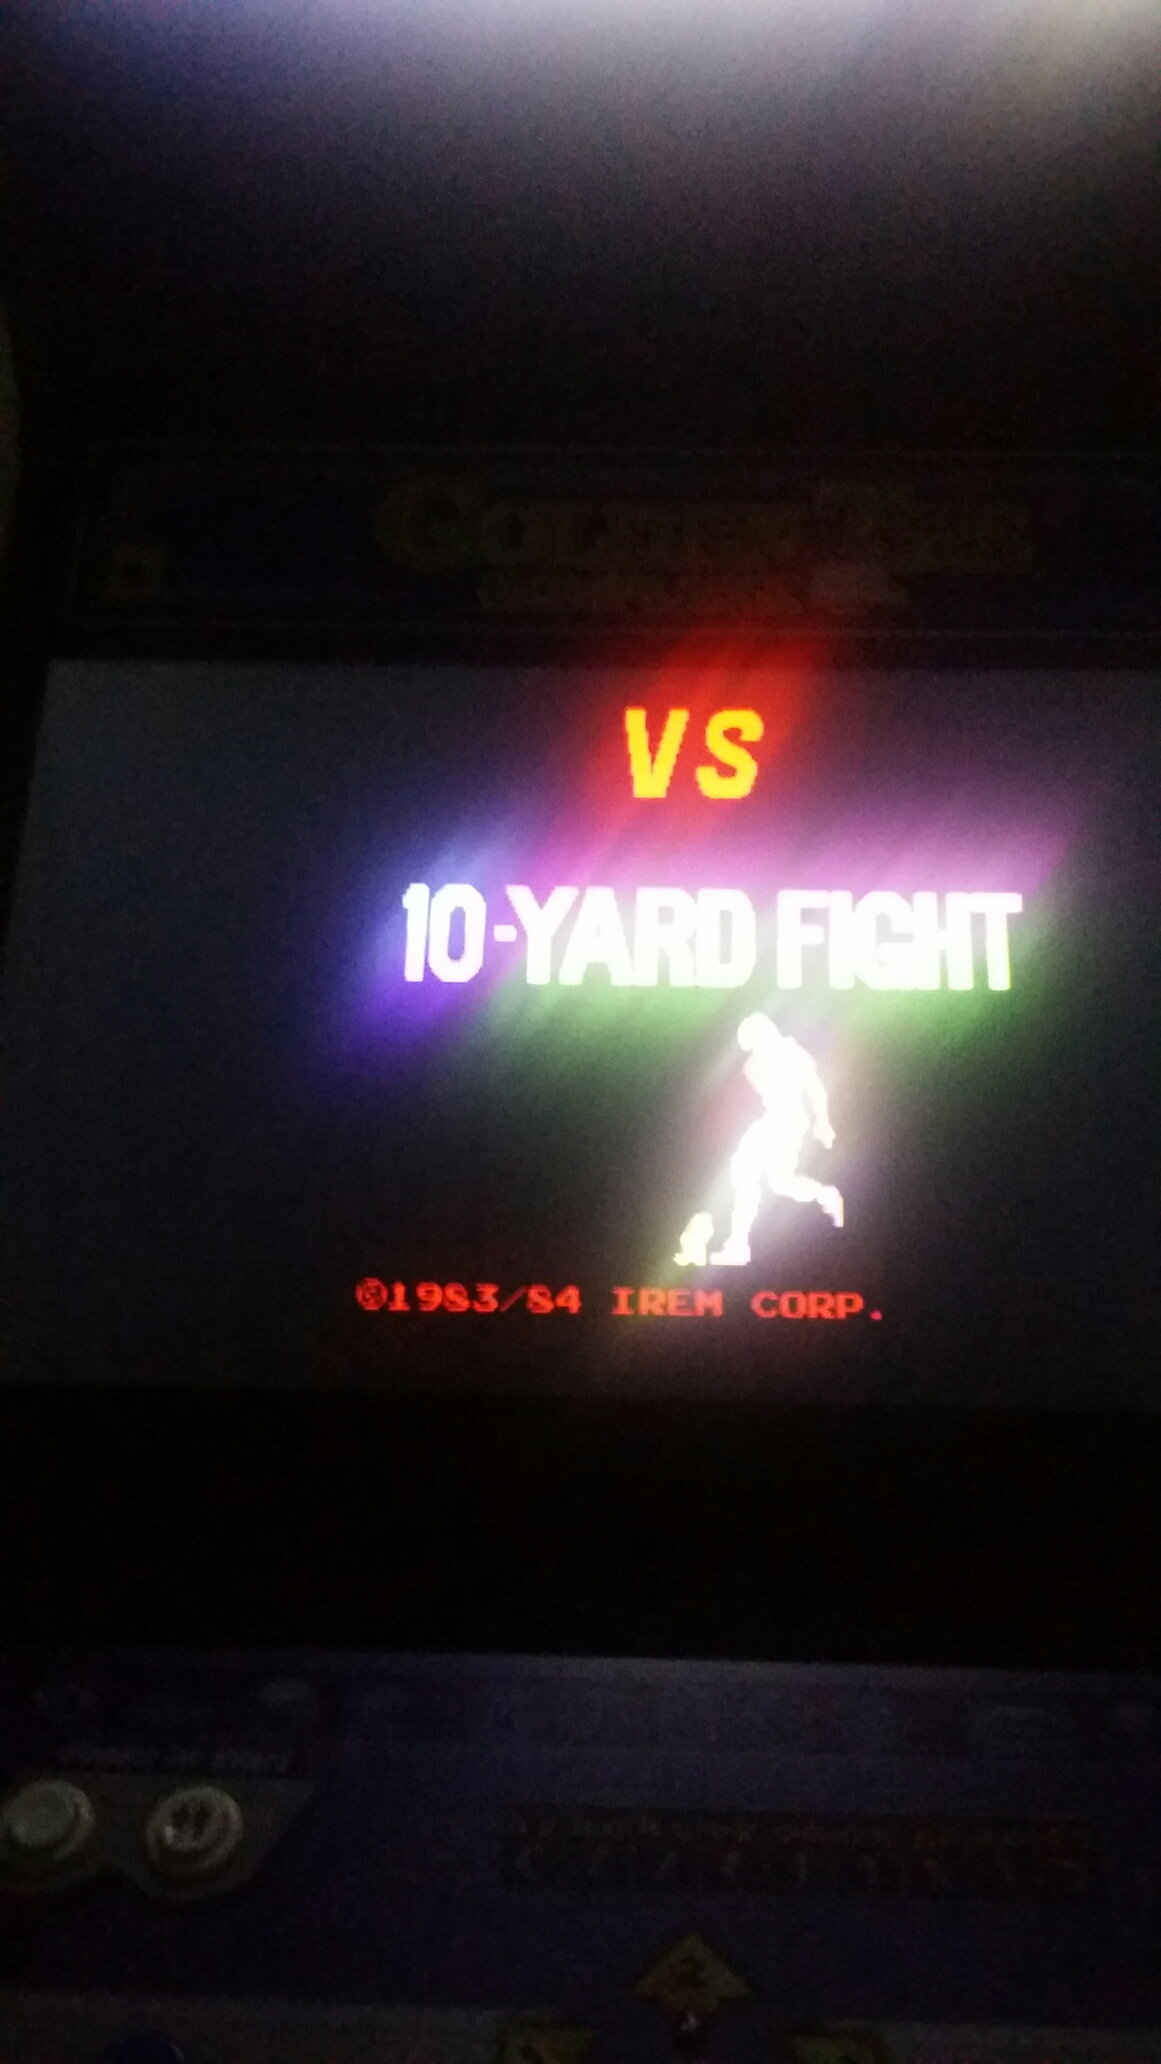 SeanStewart: 10 Yard Fight (Arcade Emulated / M.A.M.E.) 60,750 points on 2017-12-20 20:57:48